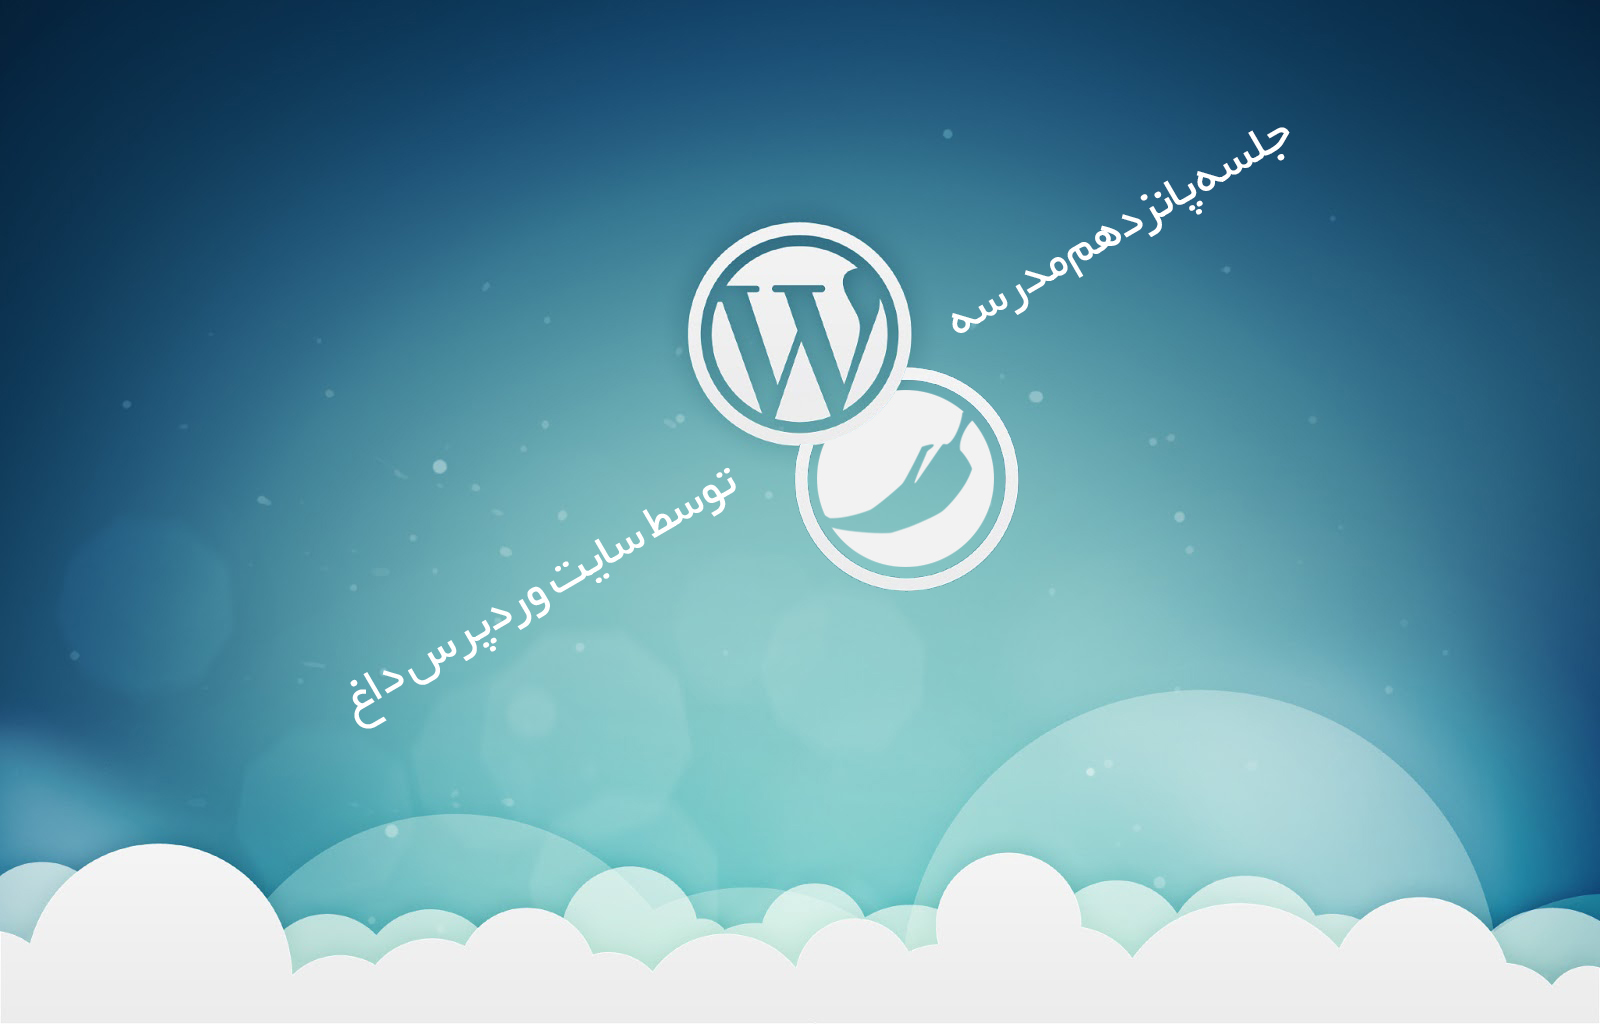 school-wordpress-redwp-15